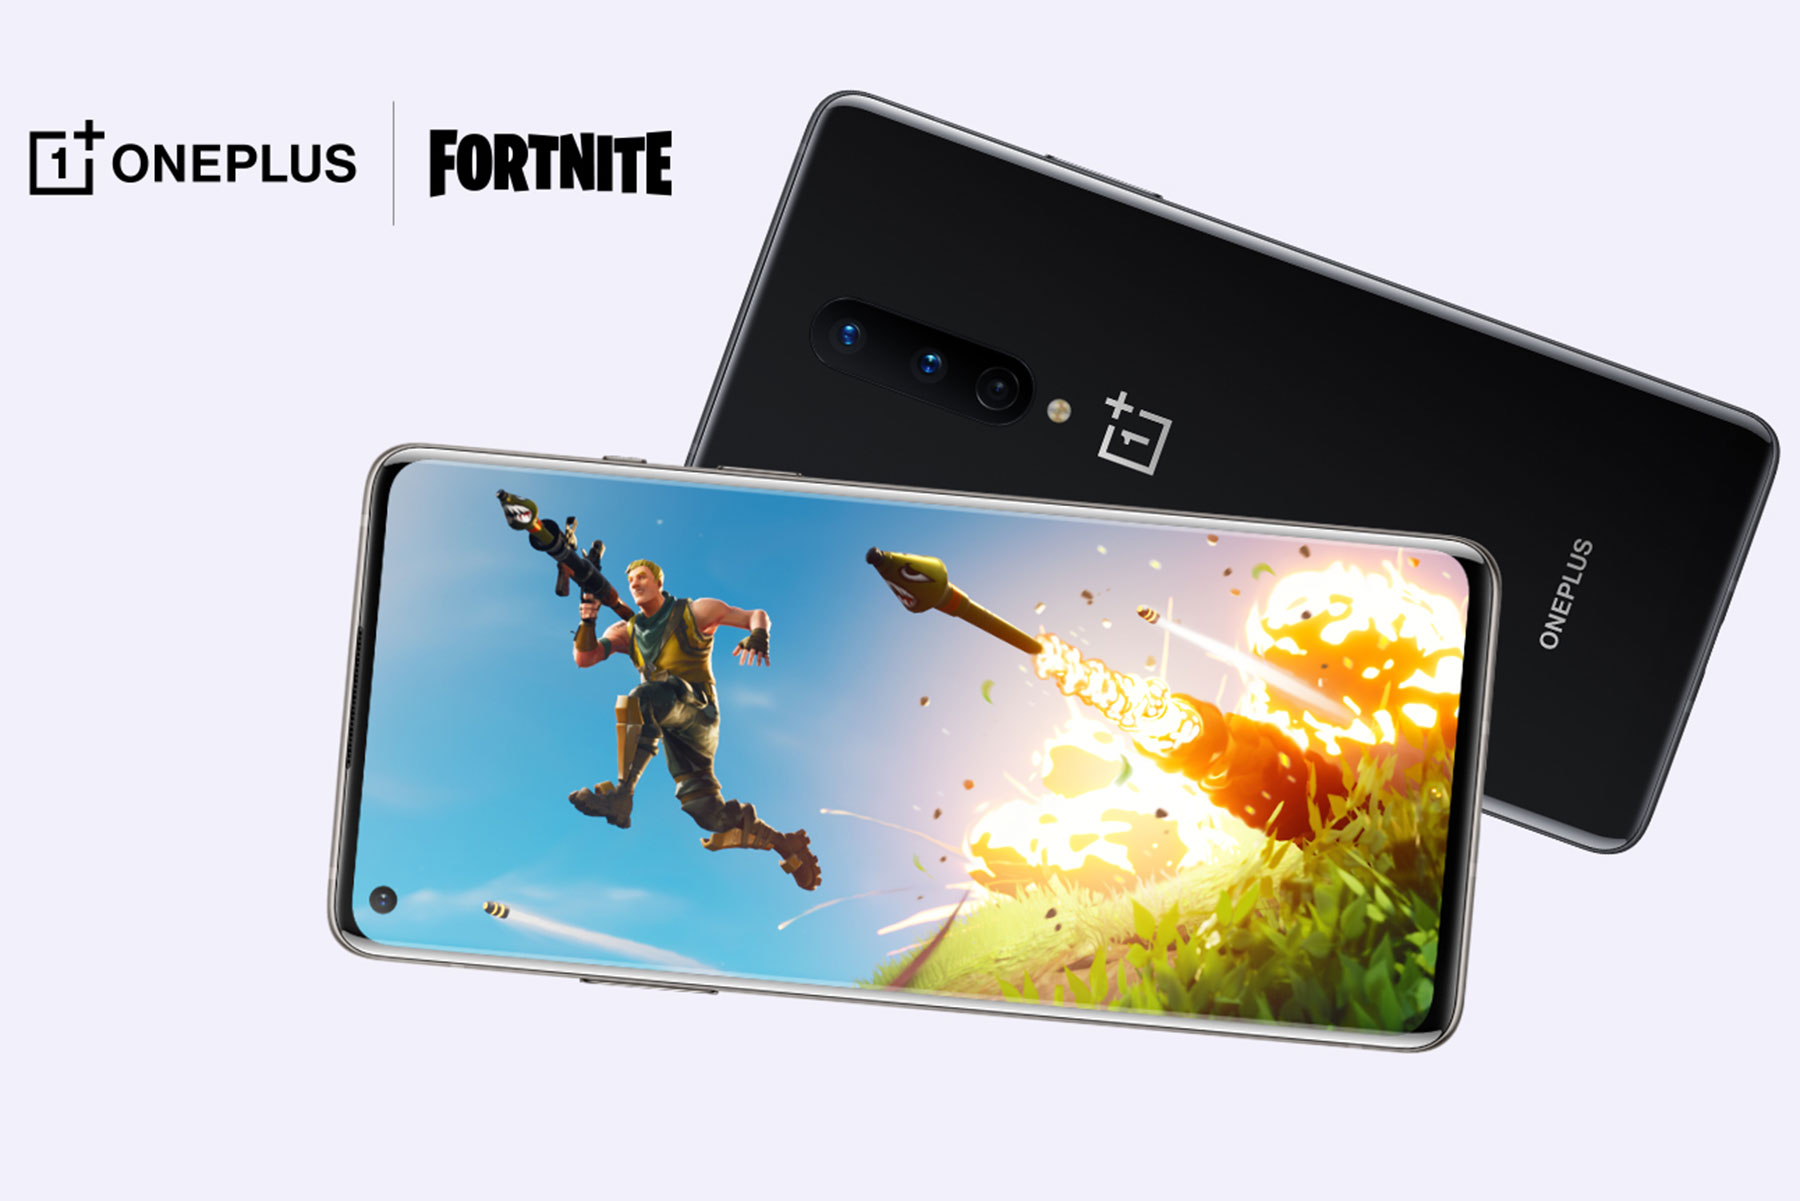 fortnite google android 12 epic games